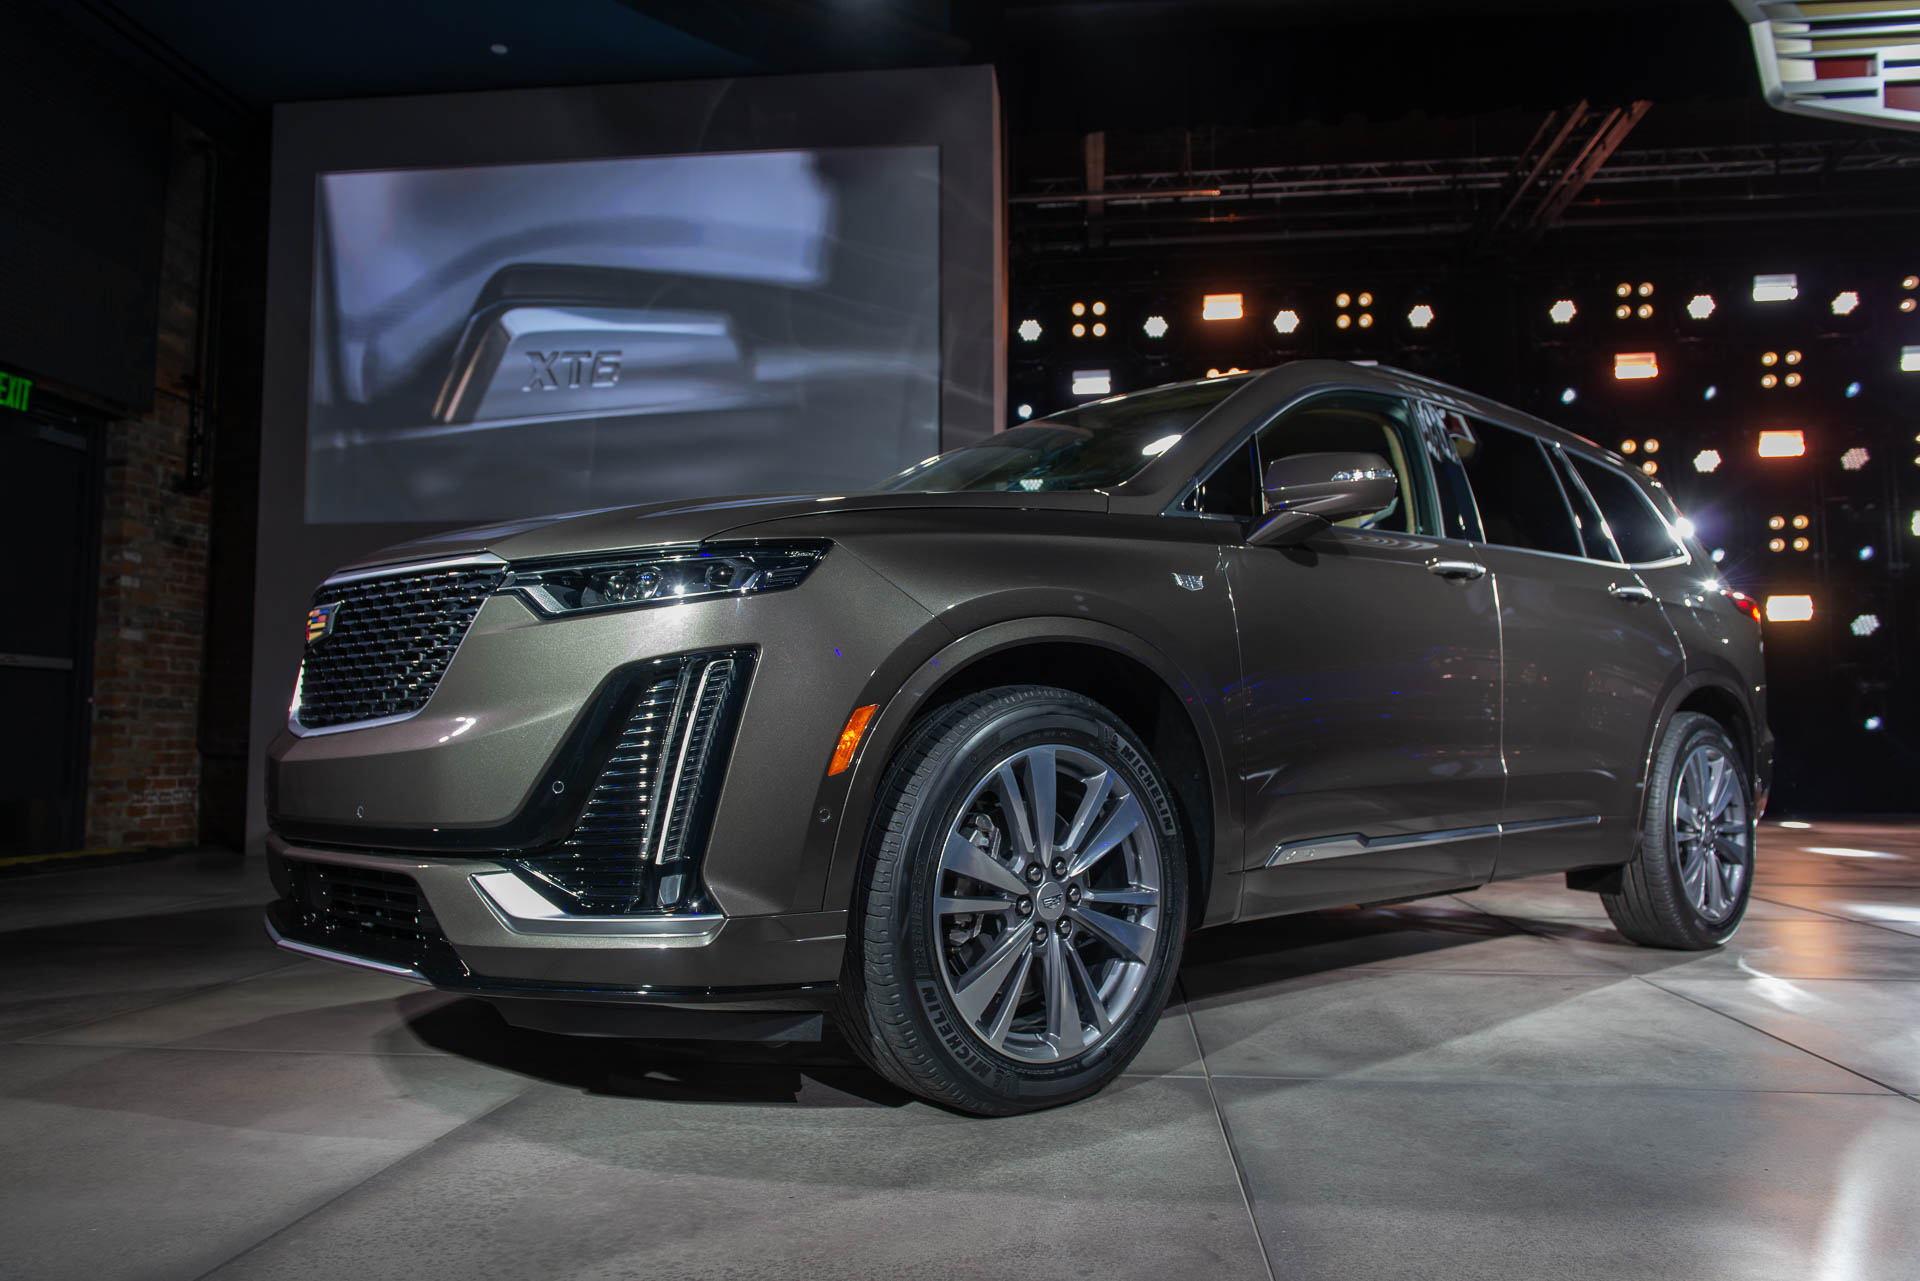 2020 Cadillac Xt6 Luxury Three Row Crossover First Look Welcome To